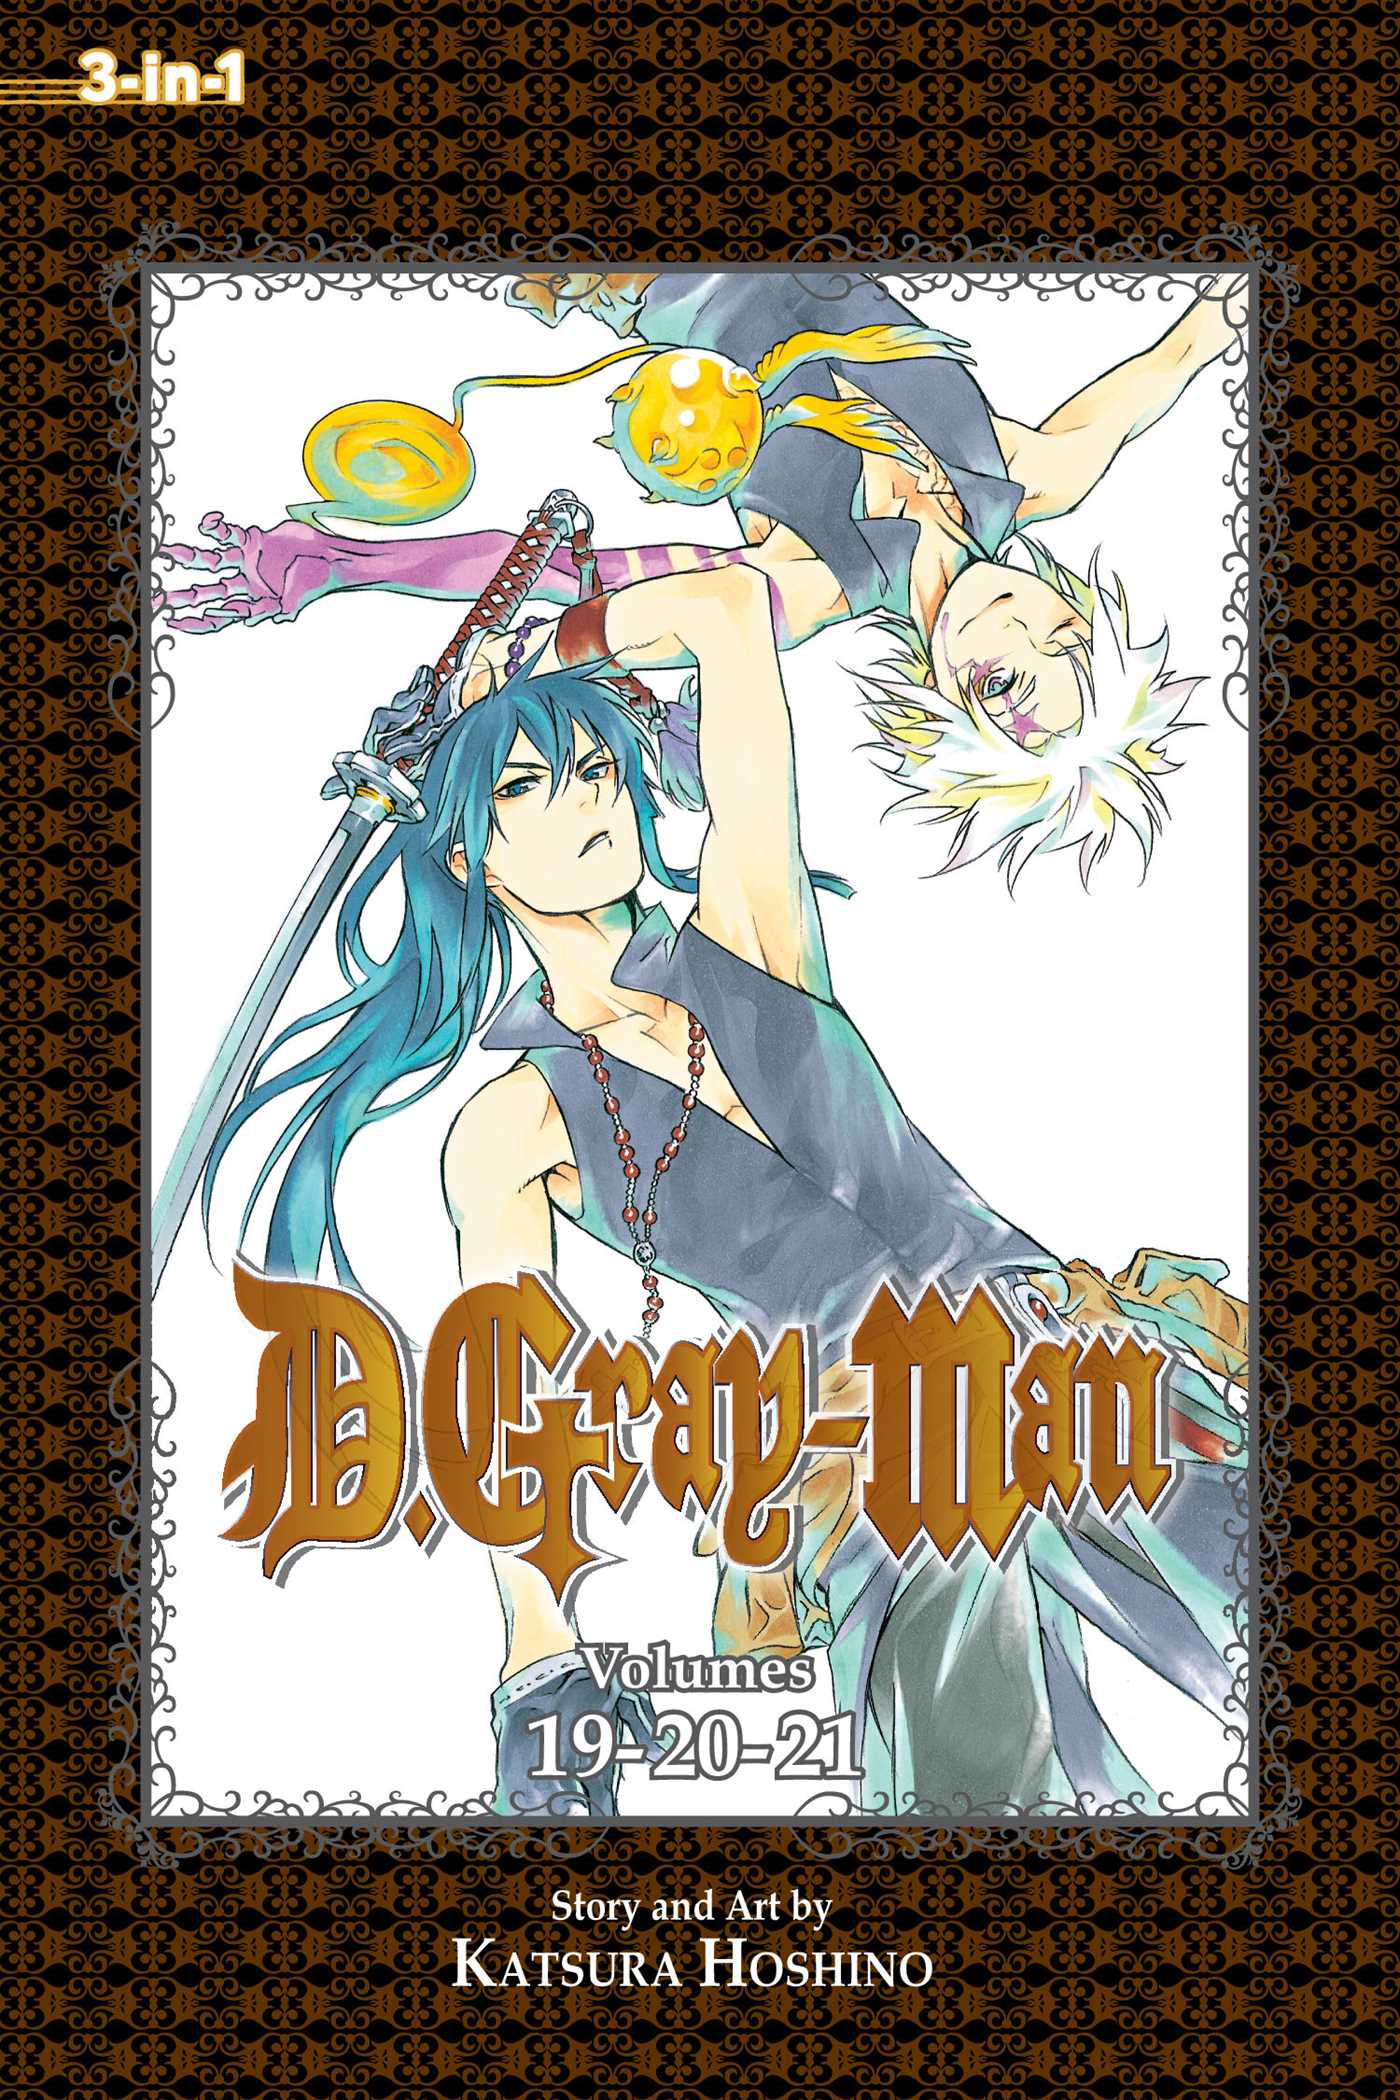 D gray man 3 in 1 edition vol 7 9781421578736 hr